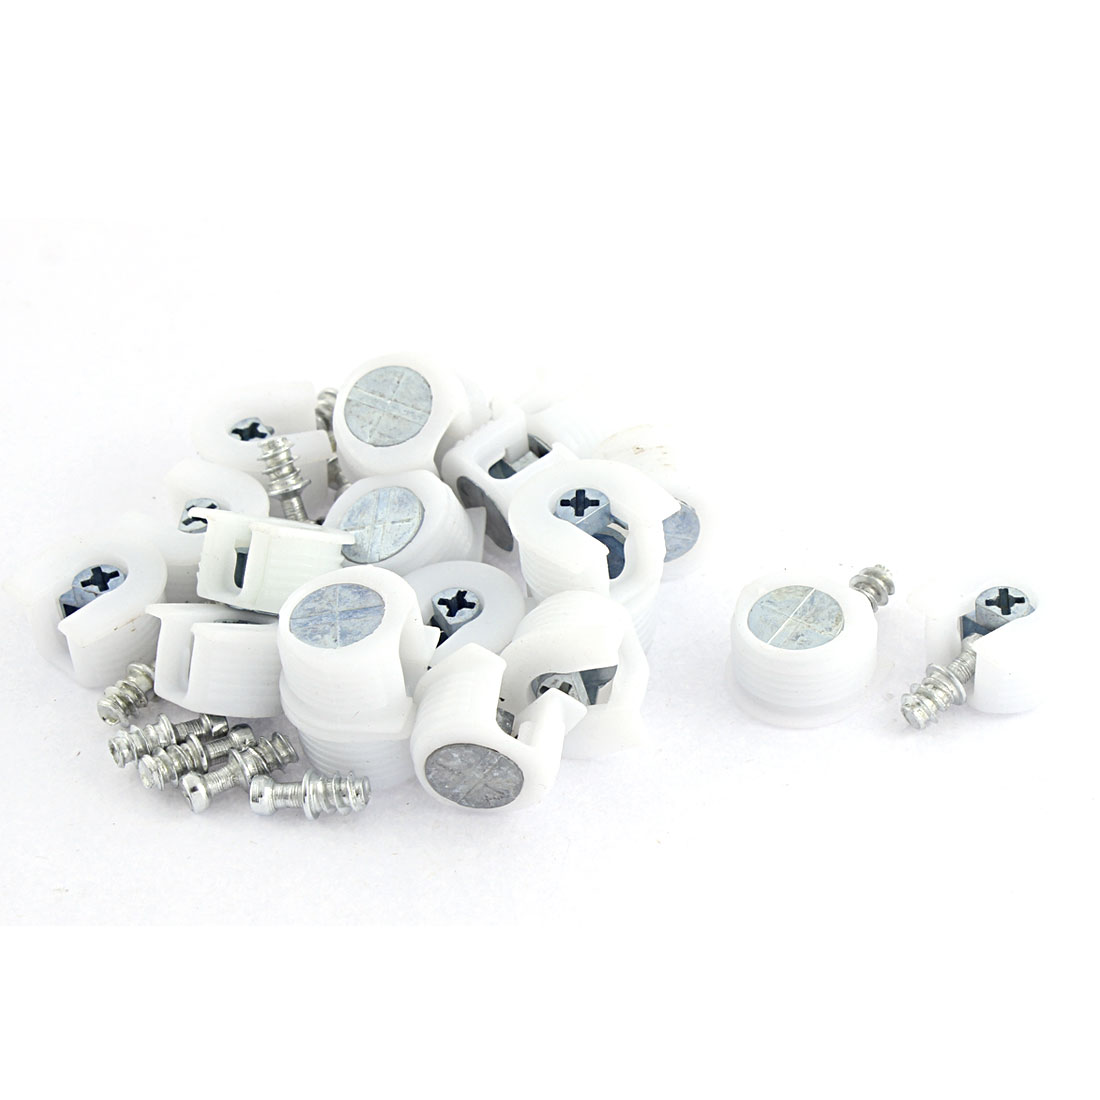 Furniture Two-in-One Screw in Type Bracket Shelf Support Pin White 20 Pcs